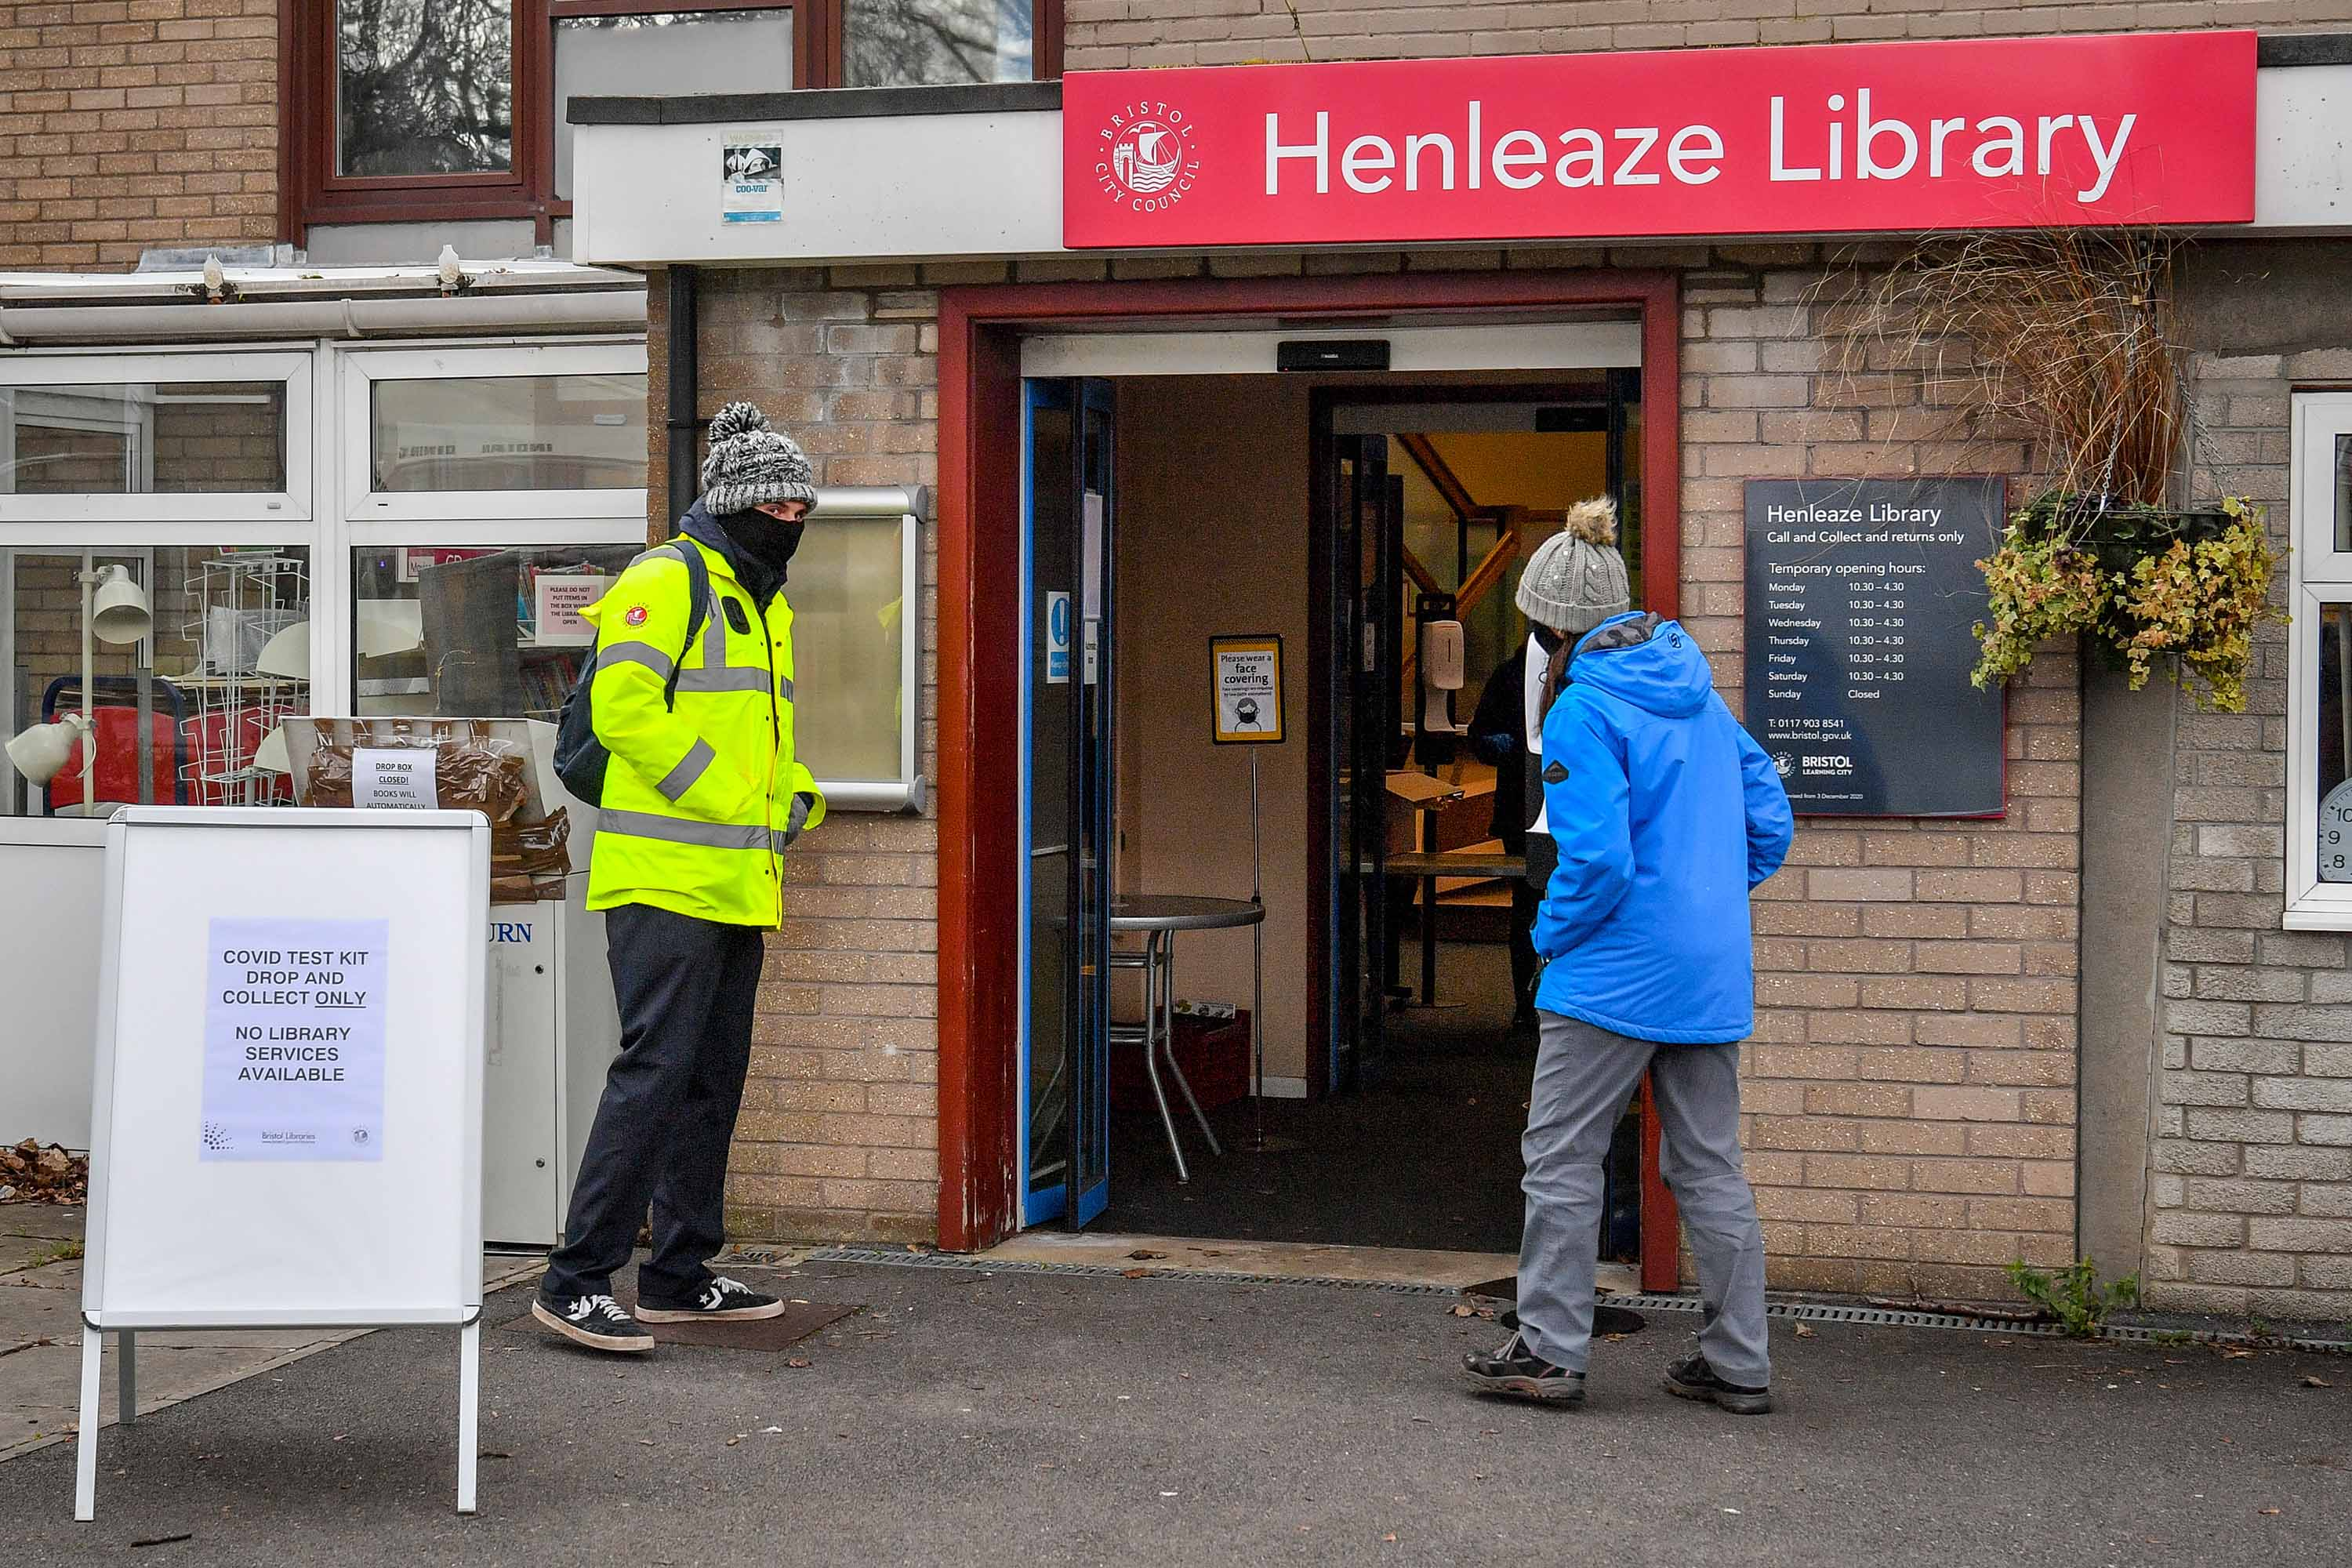 People wait outside a coronavirus surge testing center at a library in Bristol, England, on February 9, following the identification of a mutated variant in the region.